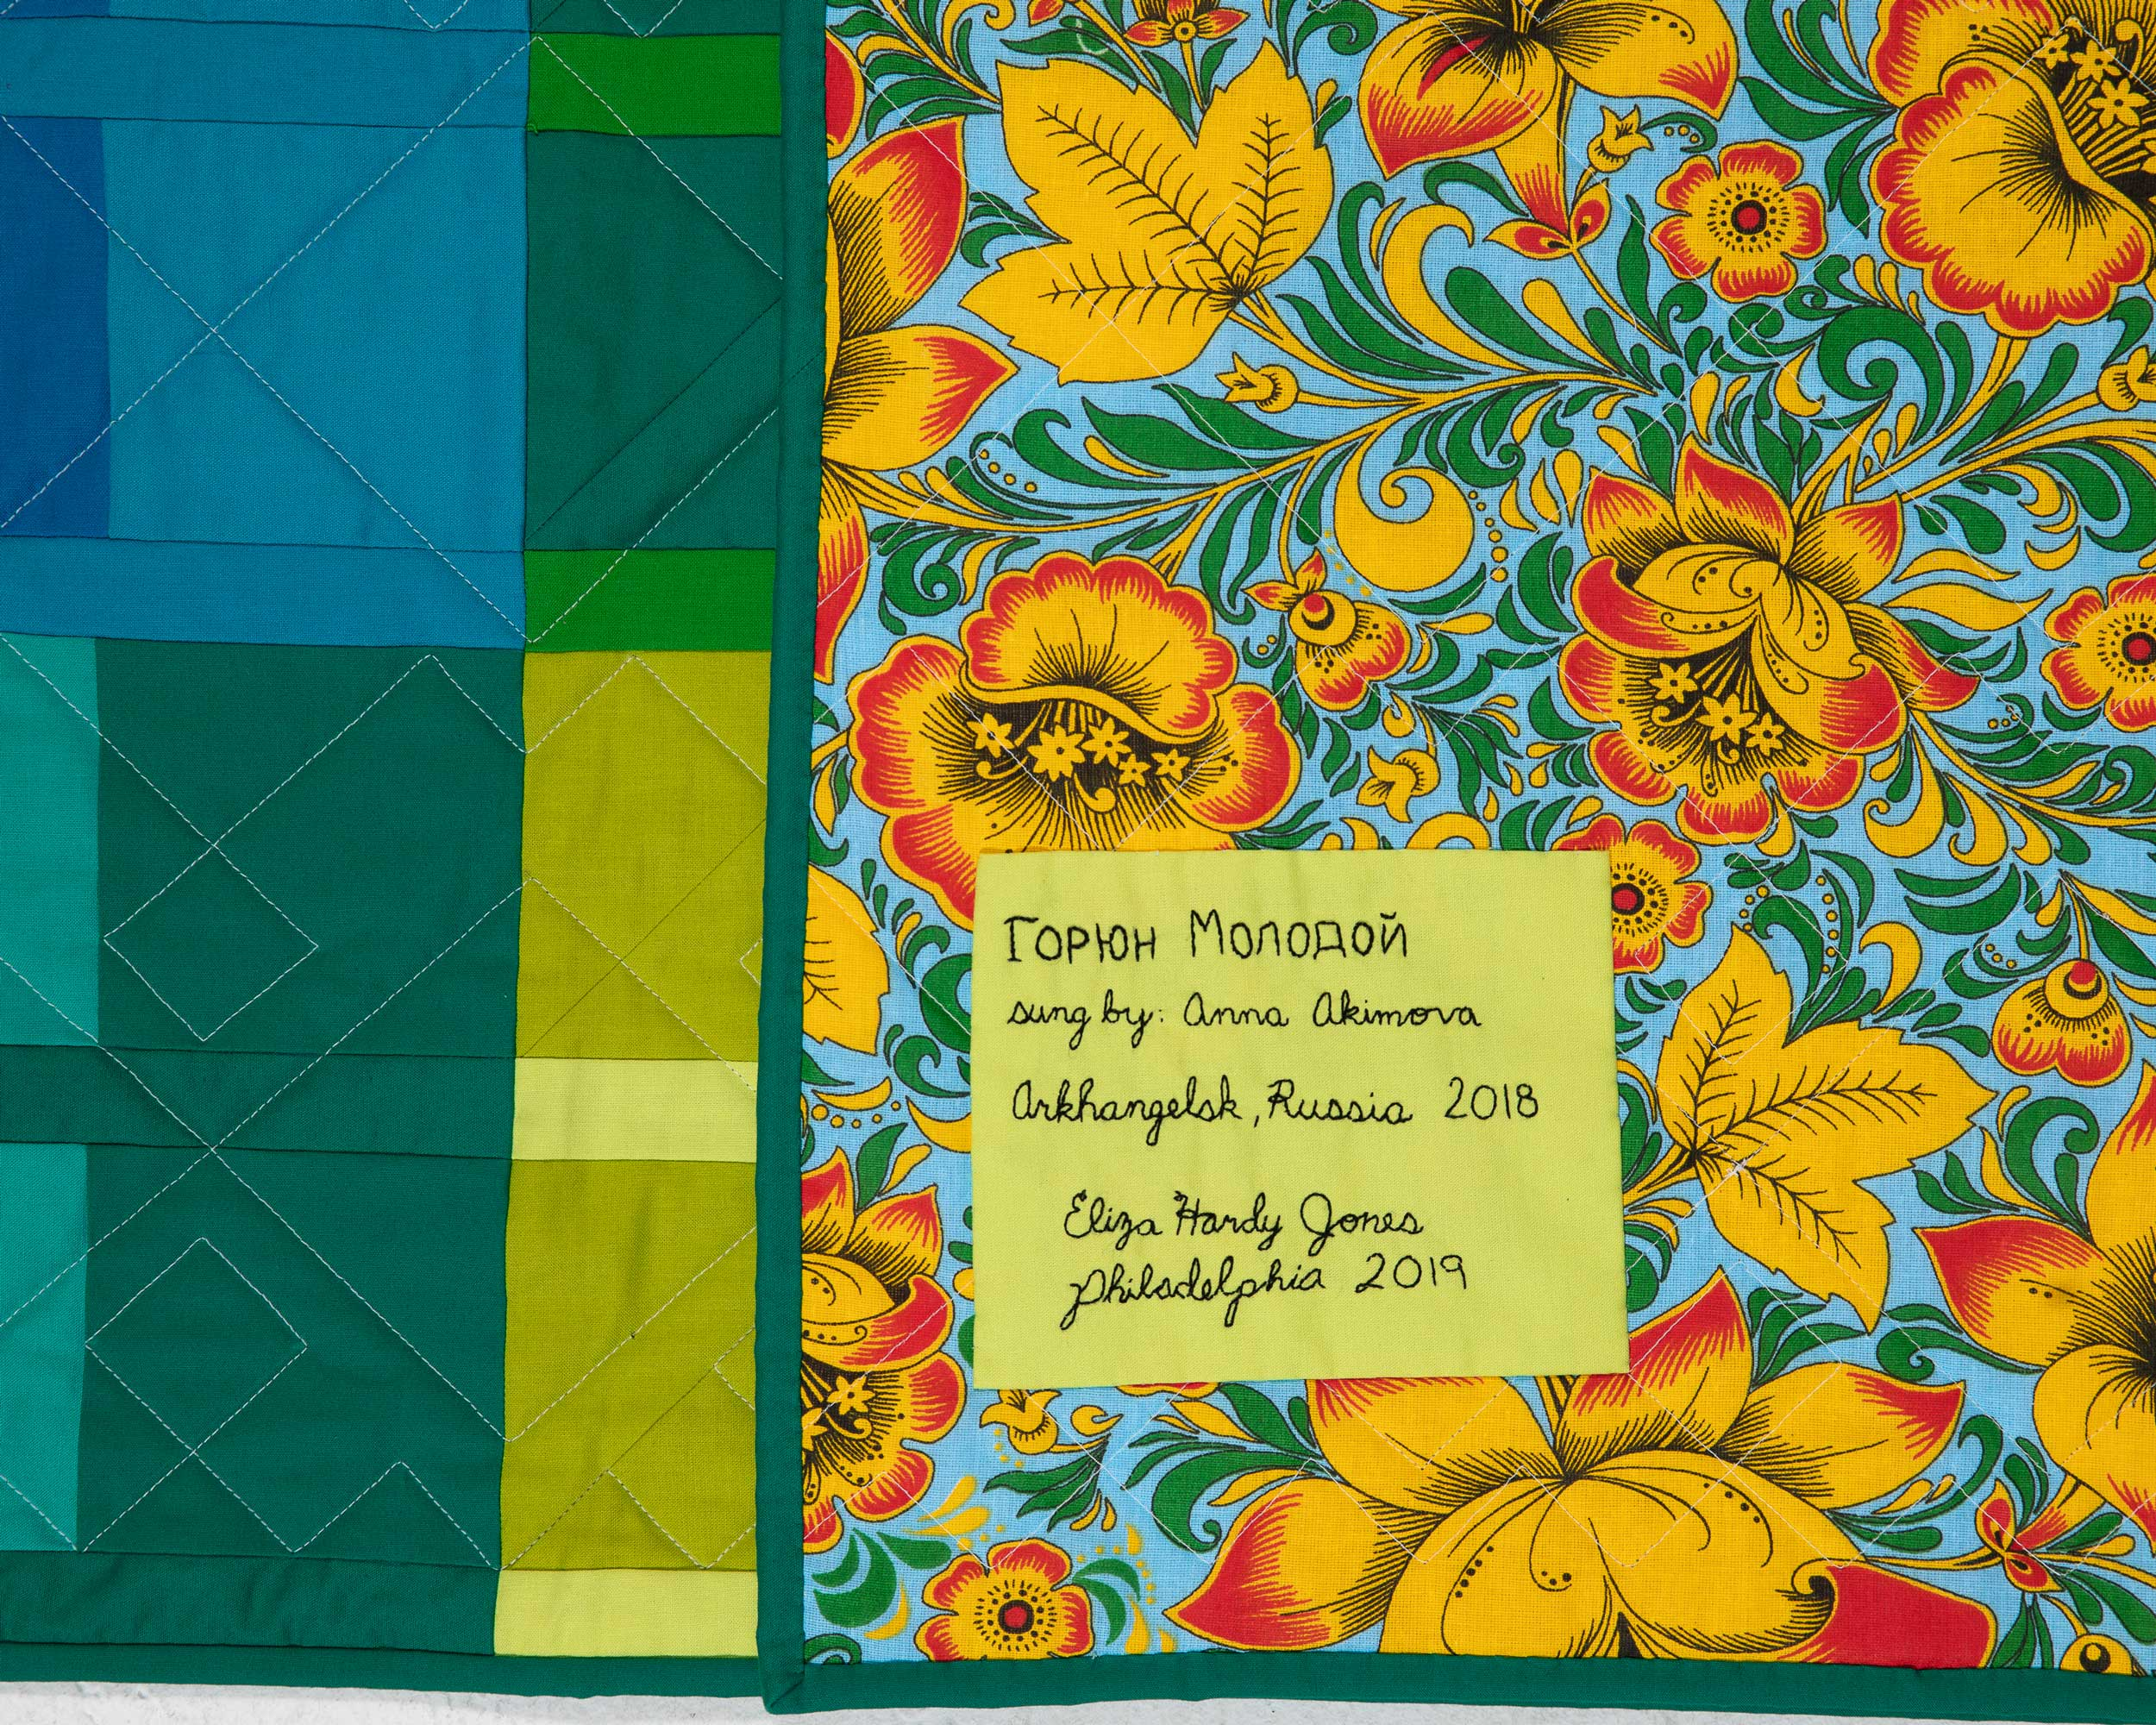 Ivanovo fabric with a Khokhloma pattern, and detail of the quilting inspired by Belgorod weaving.